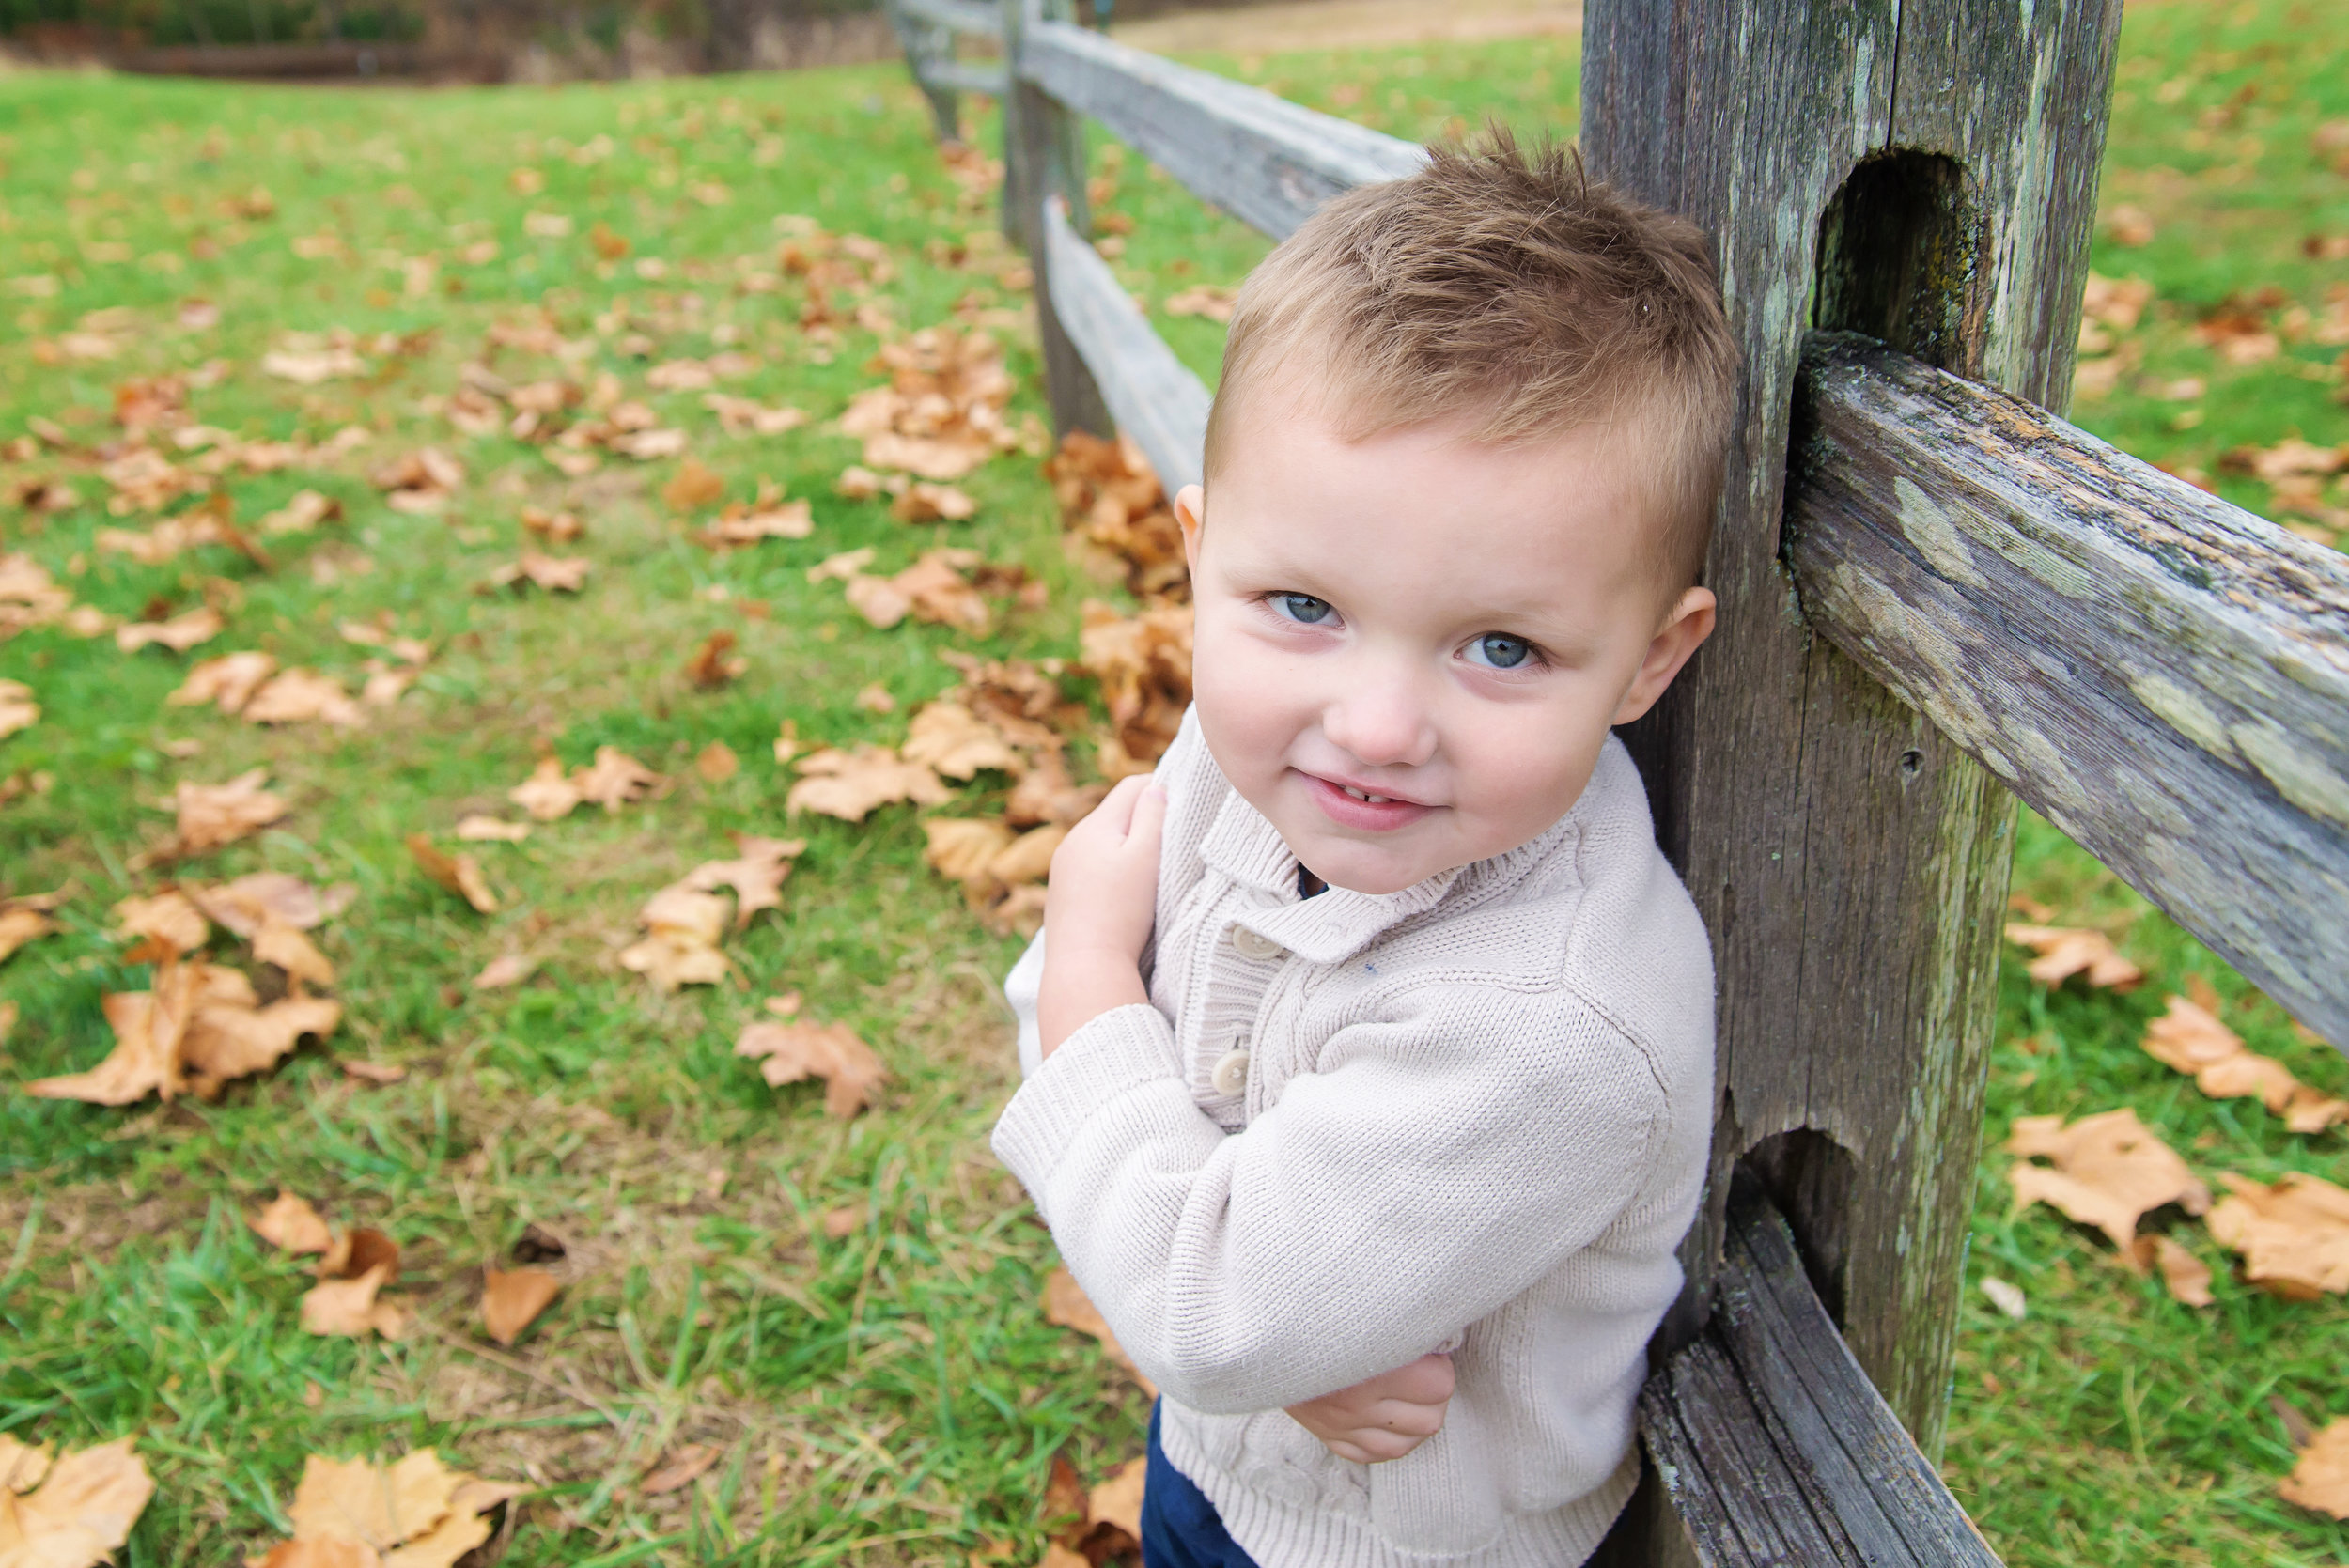 st-louis-fall-mini-sessions-2018-family-photographer-preschool-boy-arm-folded-leaning-on-wooden-fence.jpg